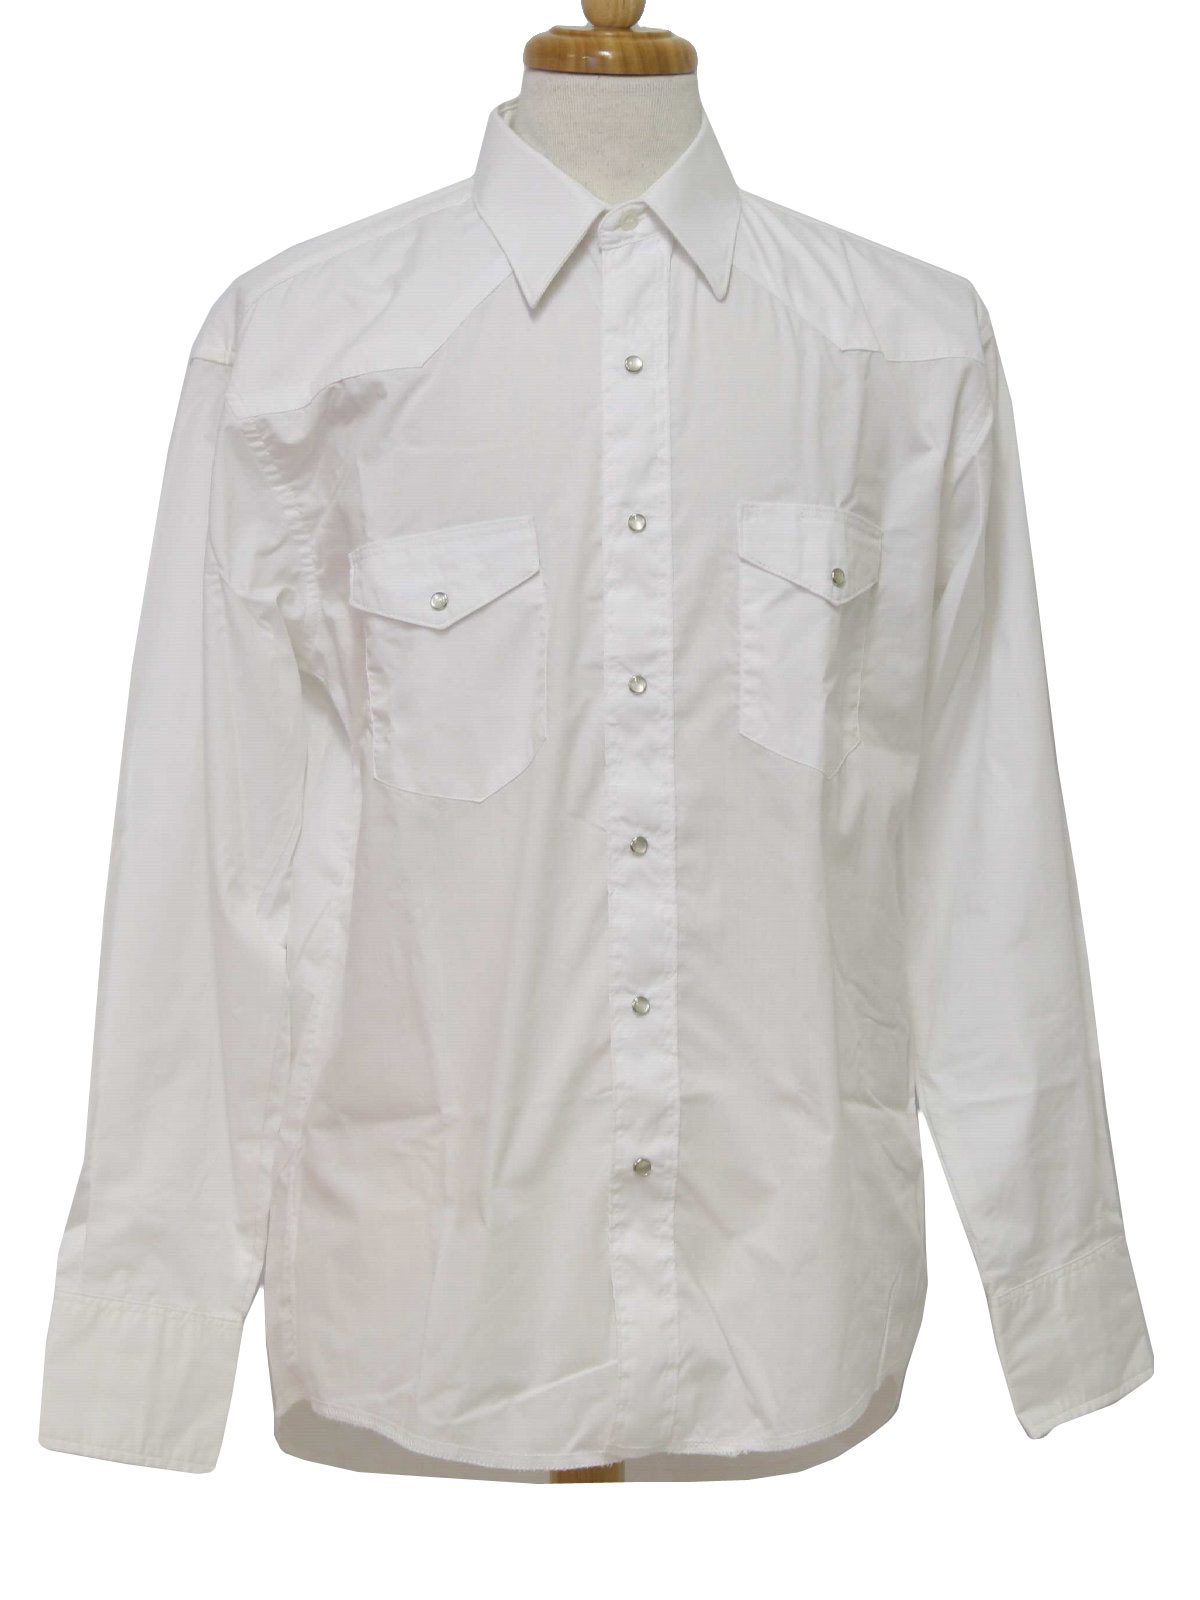 Vintage Men's Snap Down Shirt. Western Snap Down. White 70's Men's Shirt nSalYTJrH